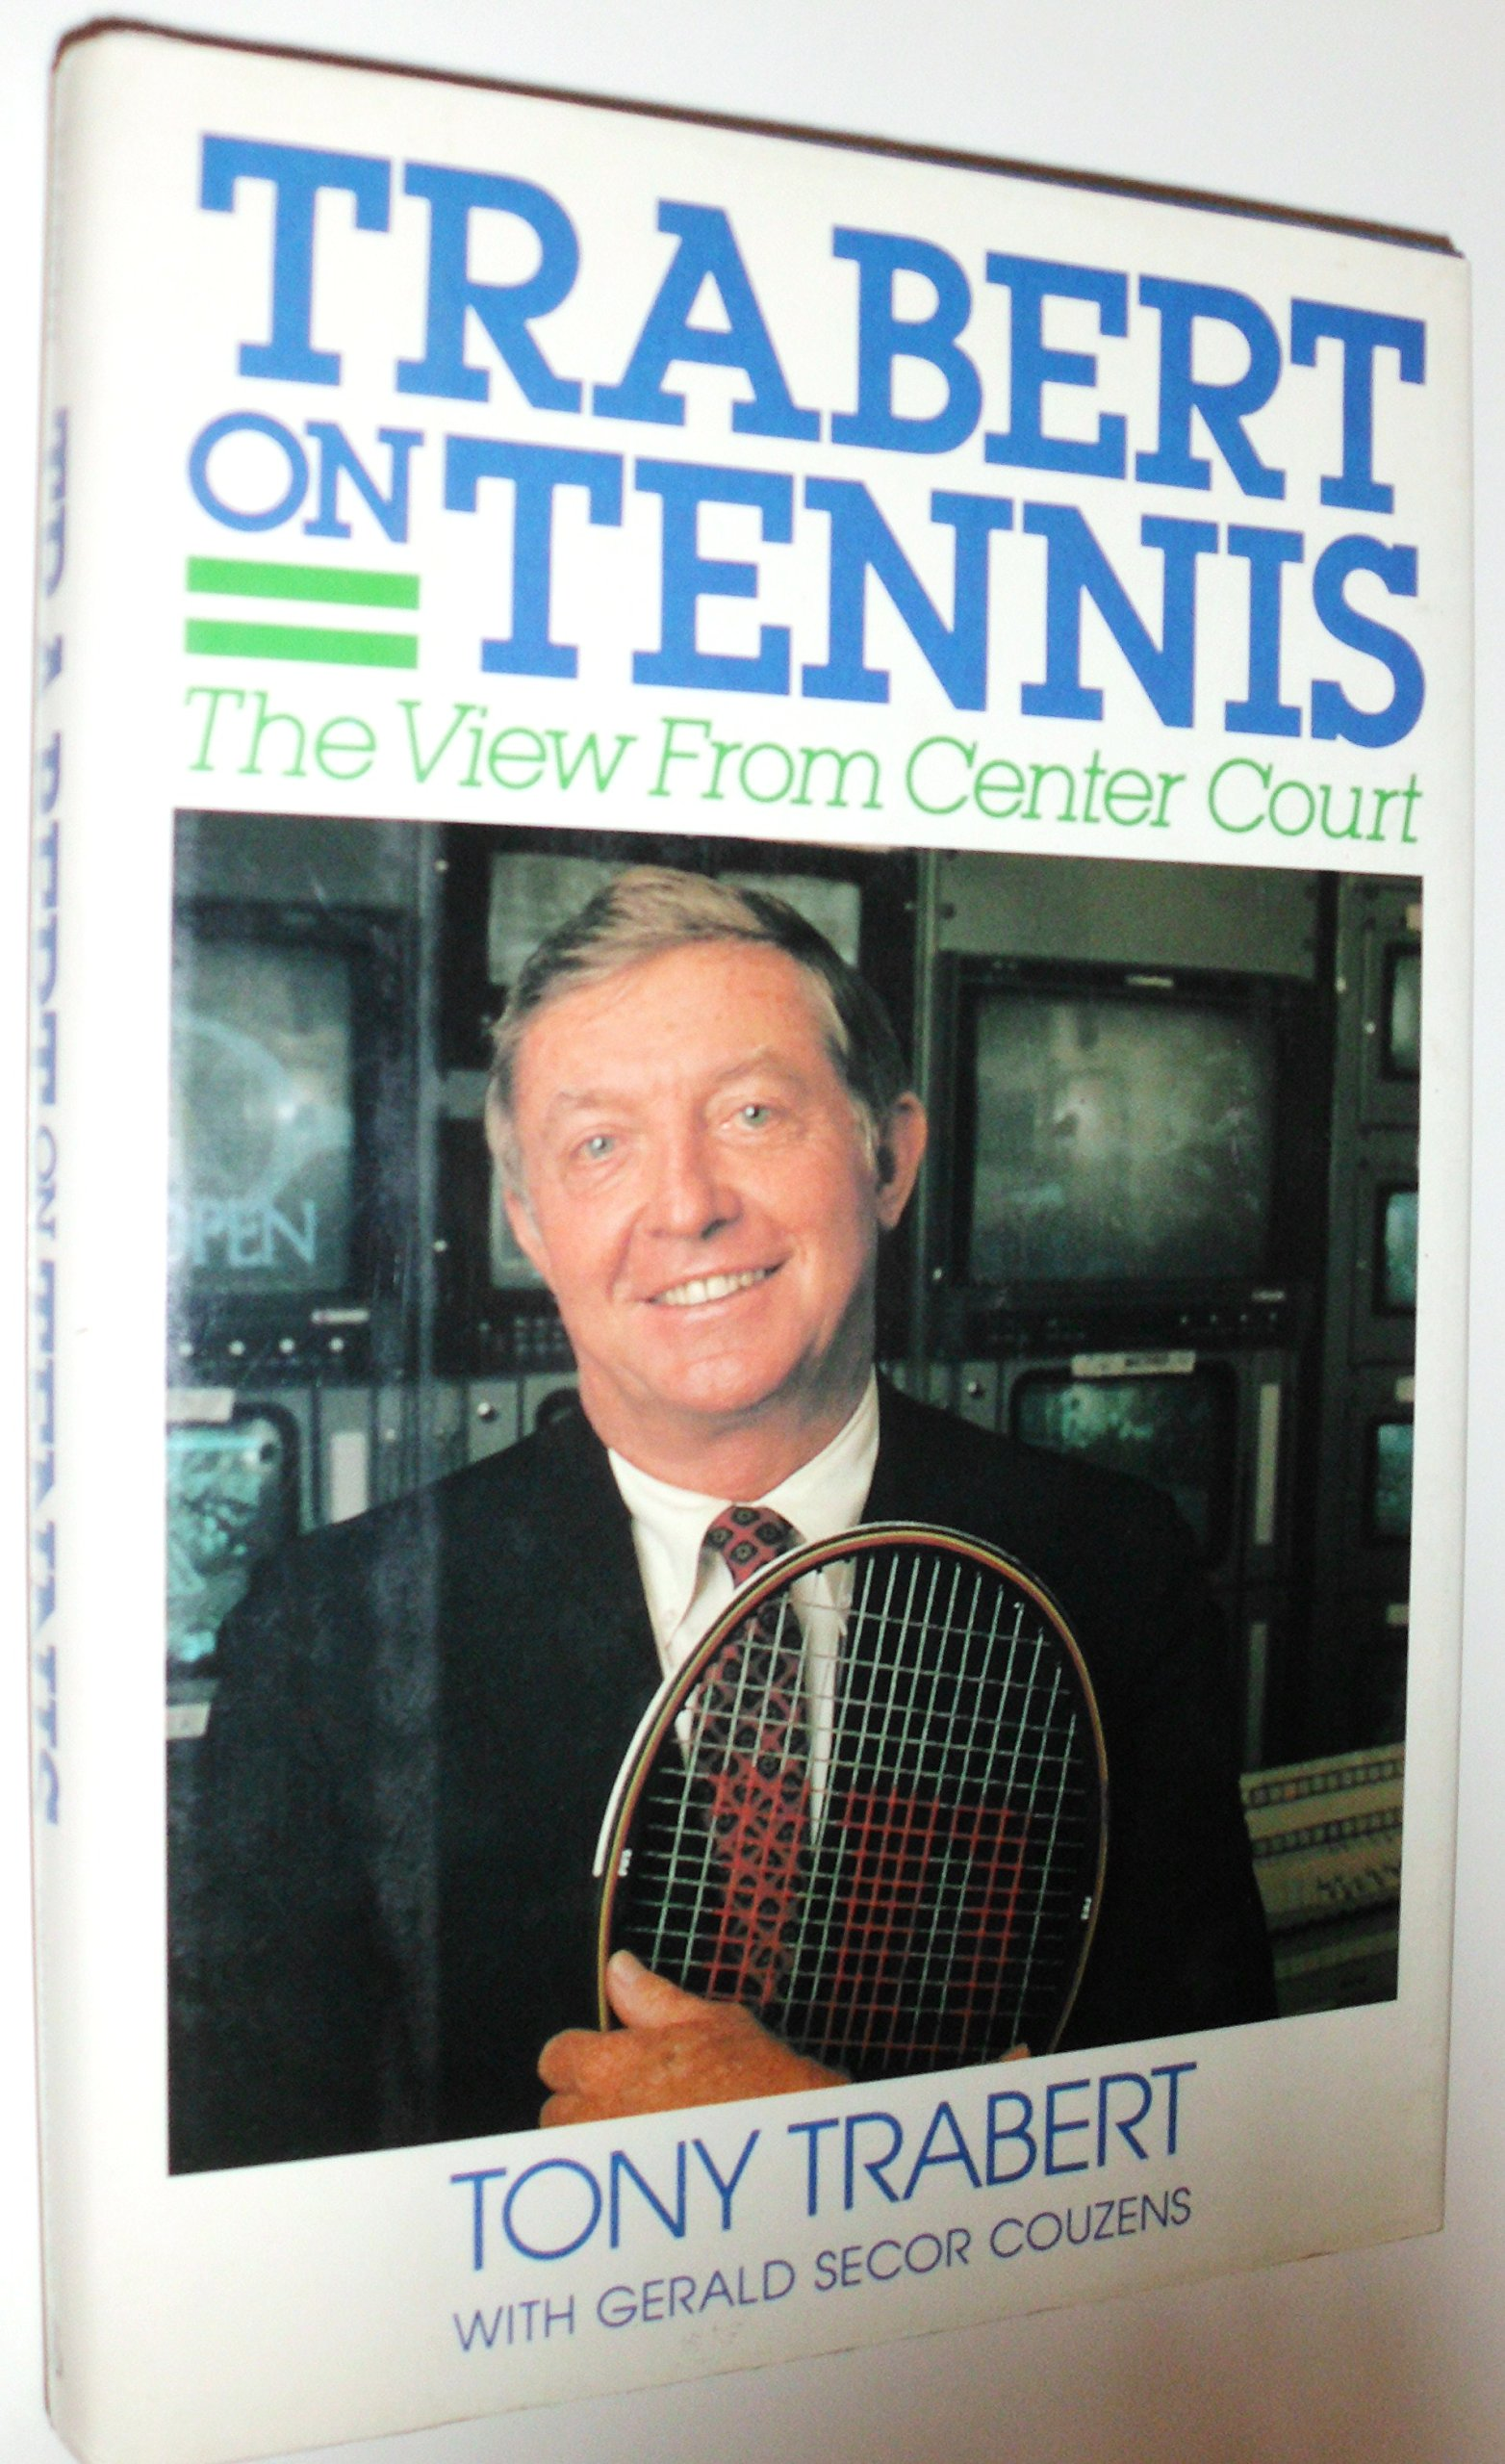 Trabert on Tennis The View from Center Court Tony Trabert